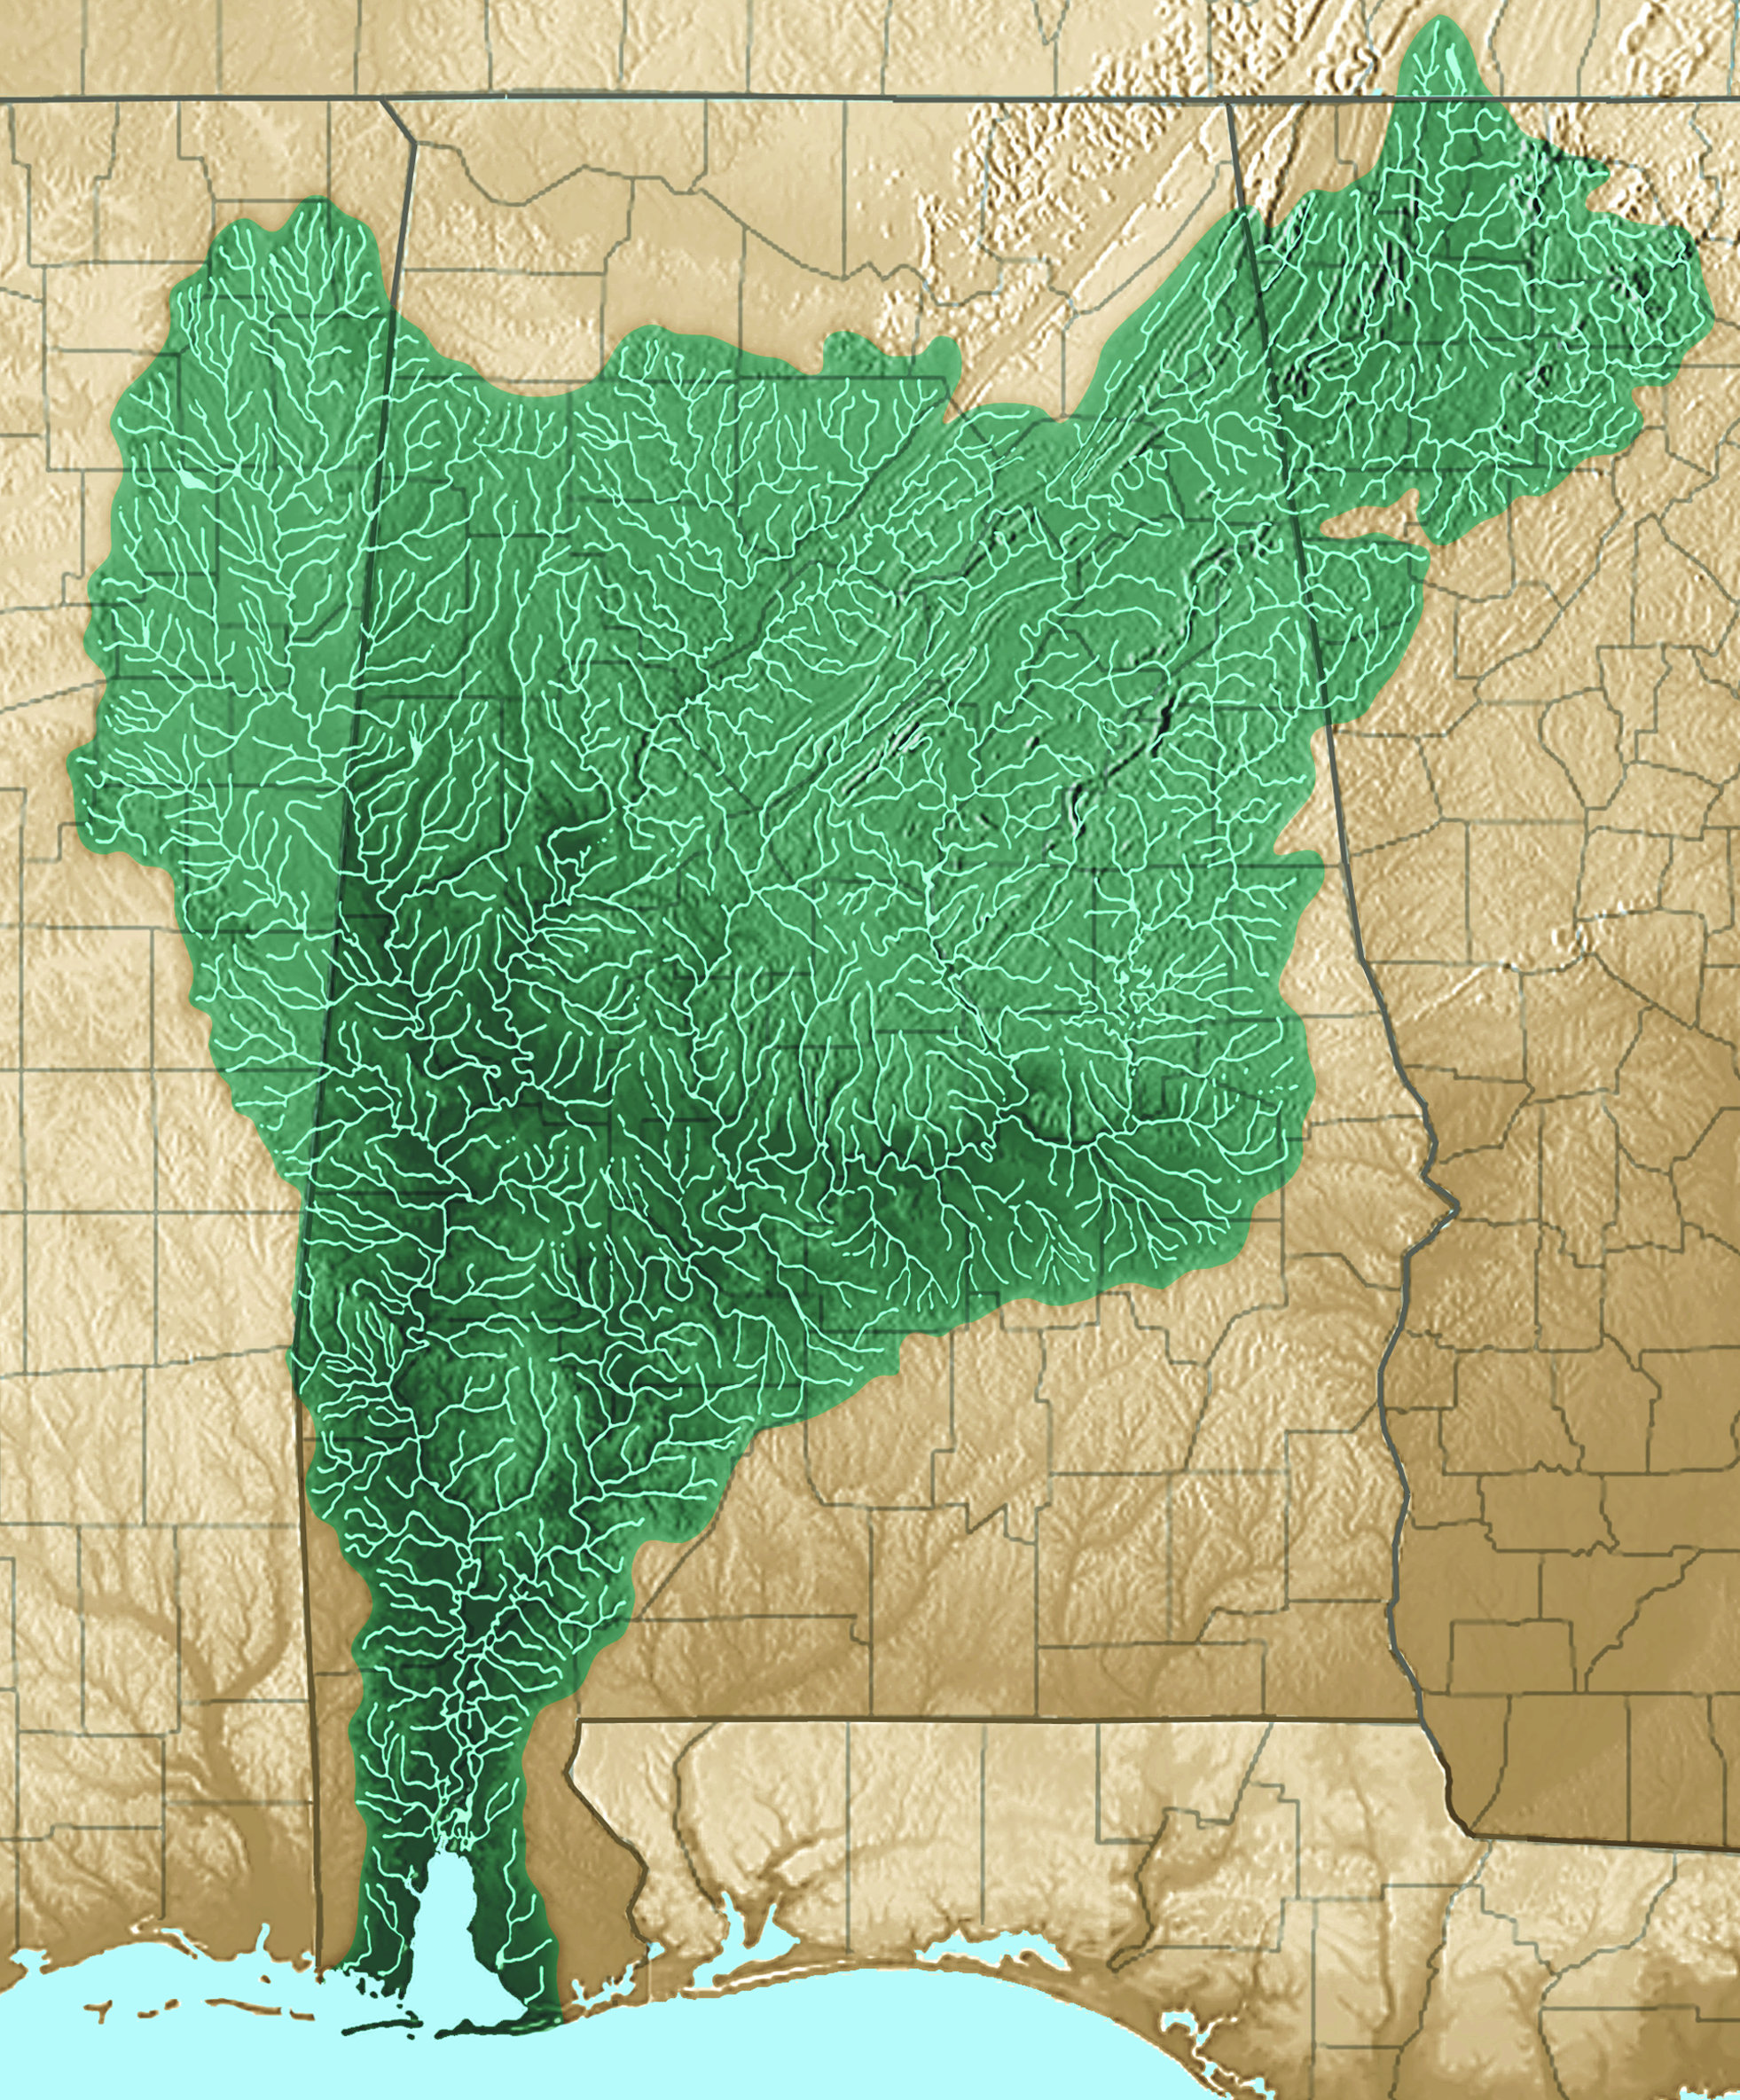 This map shows the extent of the Mobile Bay Watershed.